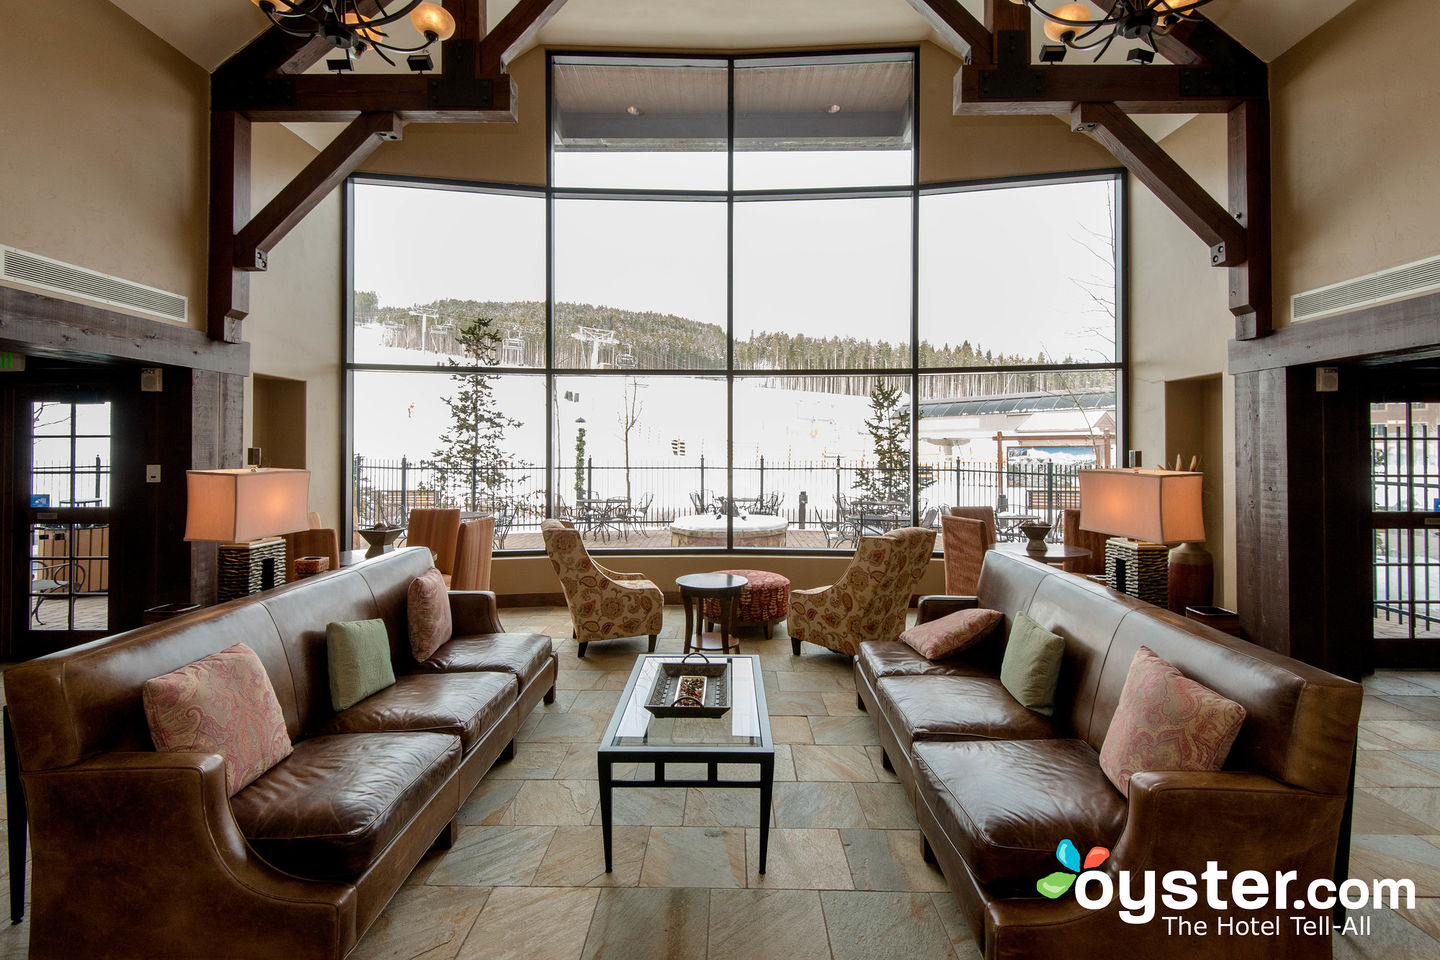 Prix Cheminee Exterieur Feu Chic Design crystal peak lodge review: what to really expect if you stay